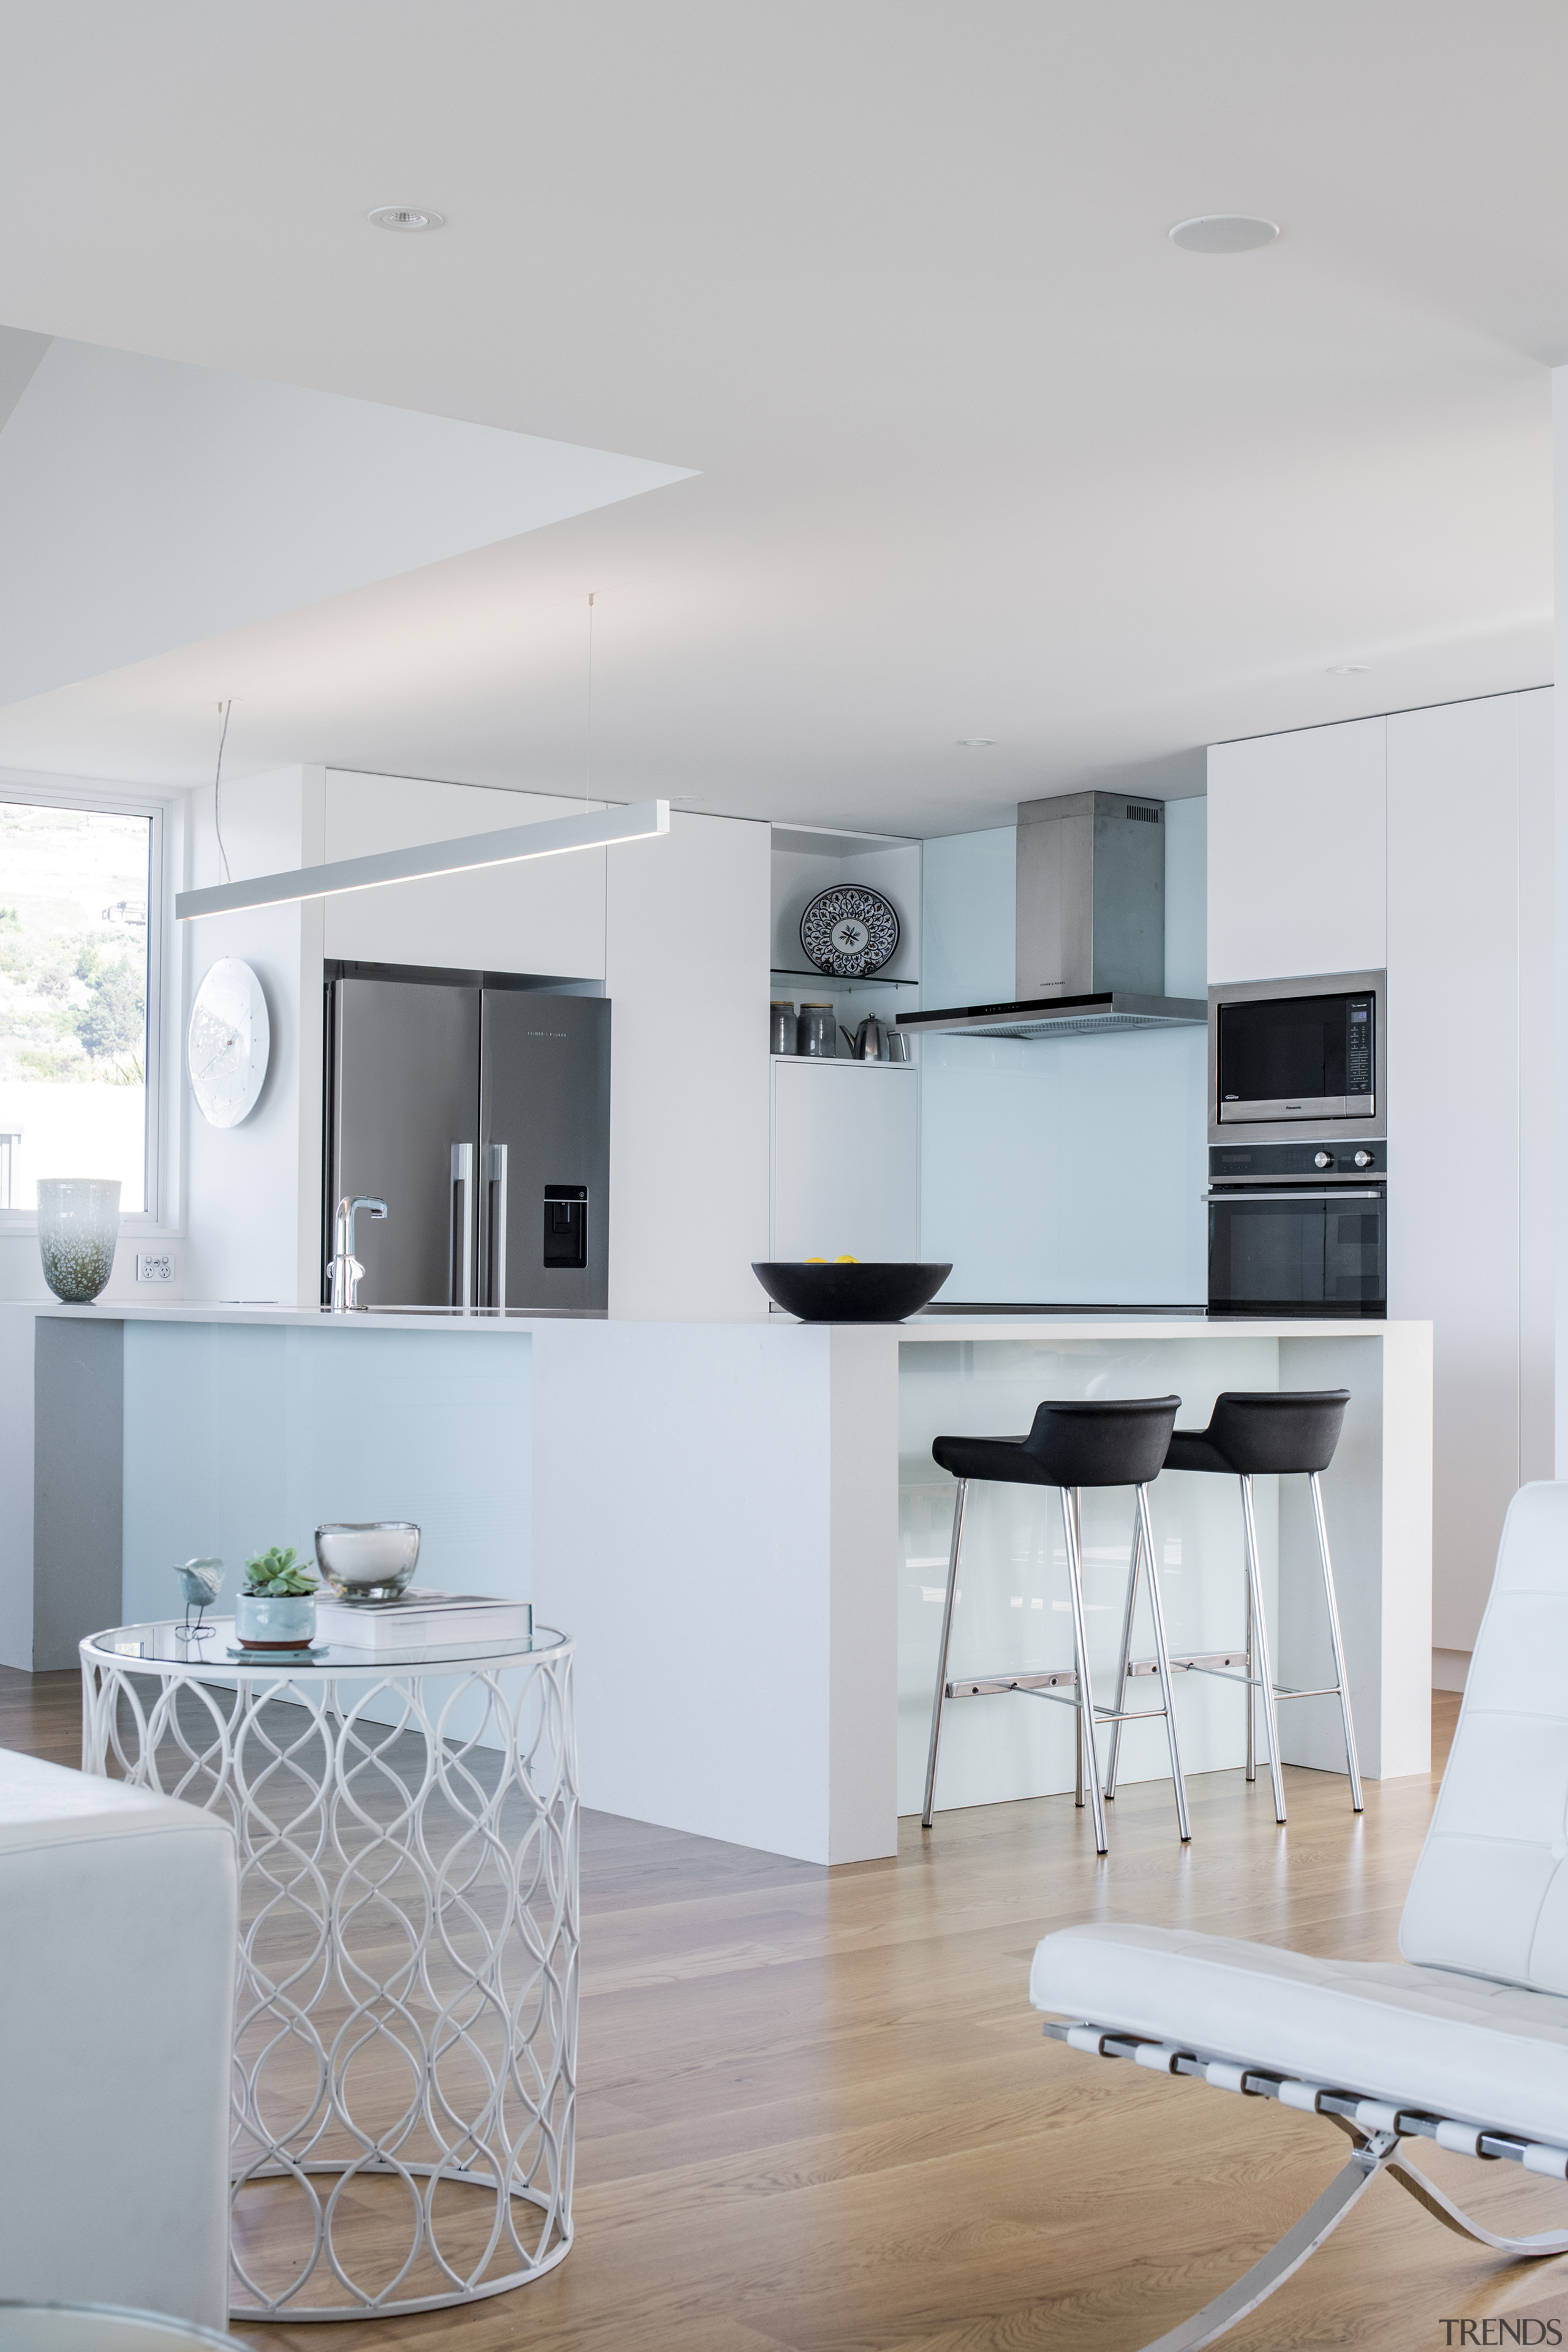 White and wood provide a pleasing combination for